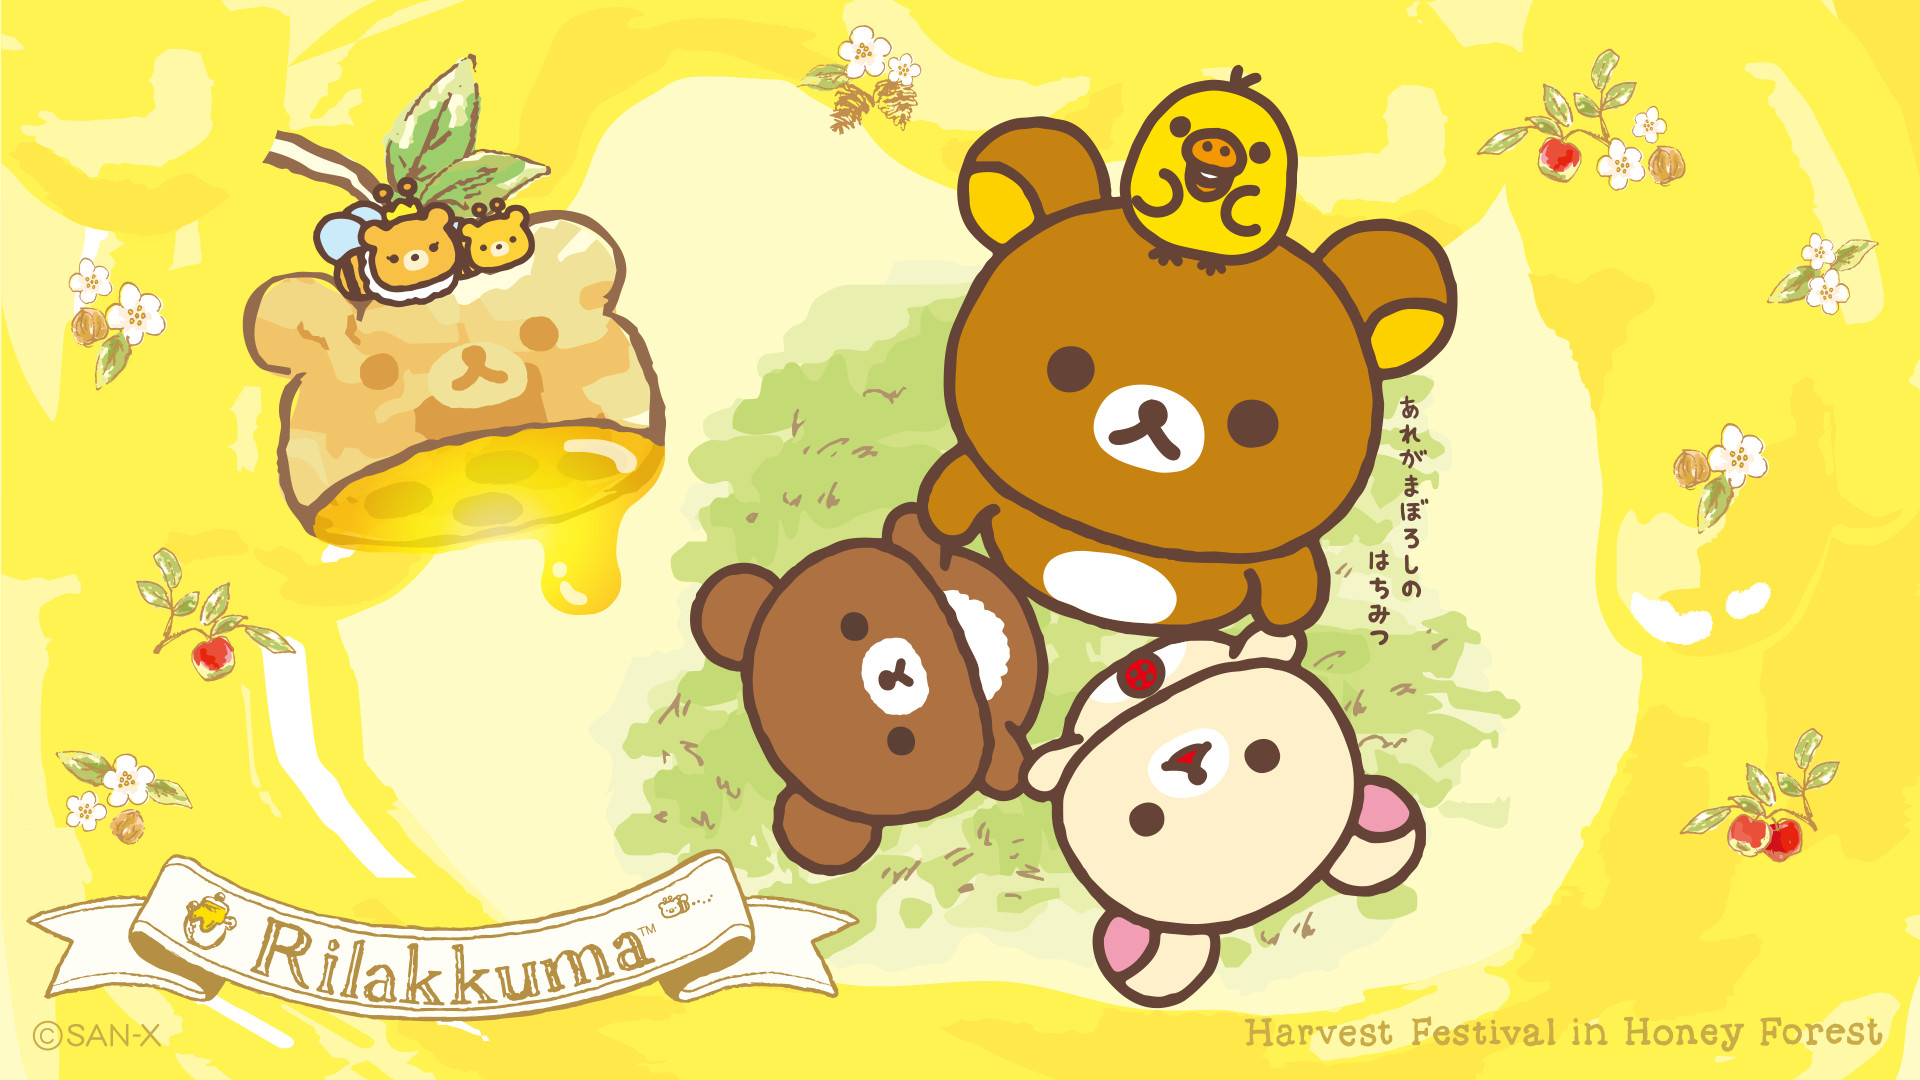 1920x1080 korirakkuma PC wallpapers (1920×1080) | rilakkuma | Pinterest | Rilakkuma,  Kawaii and Sanrio